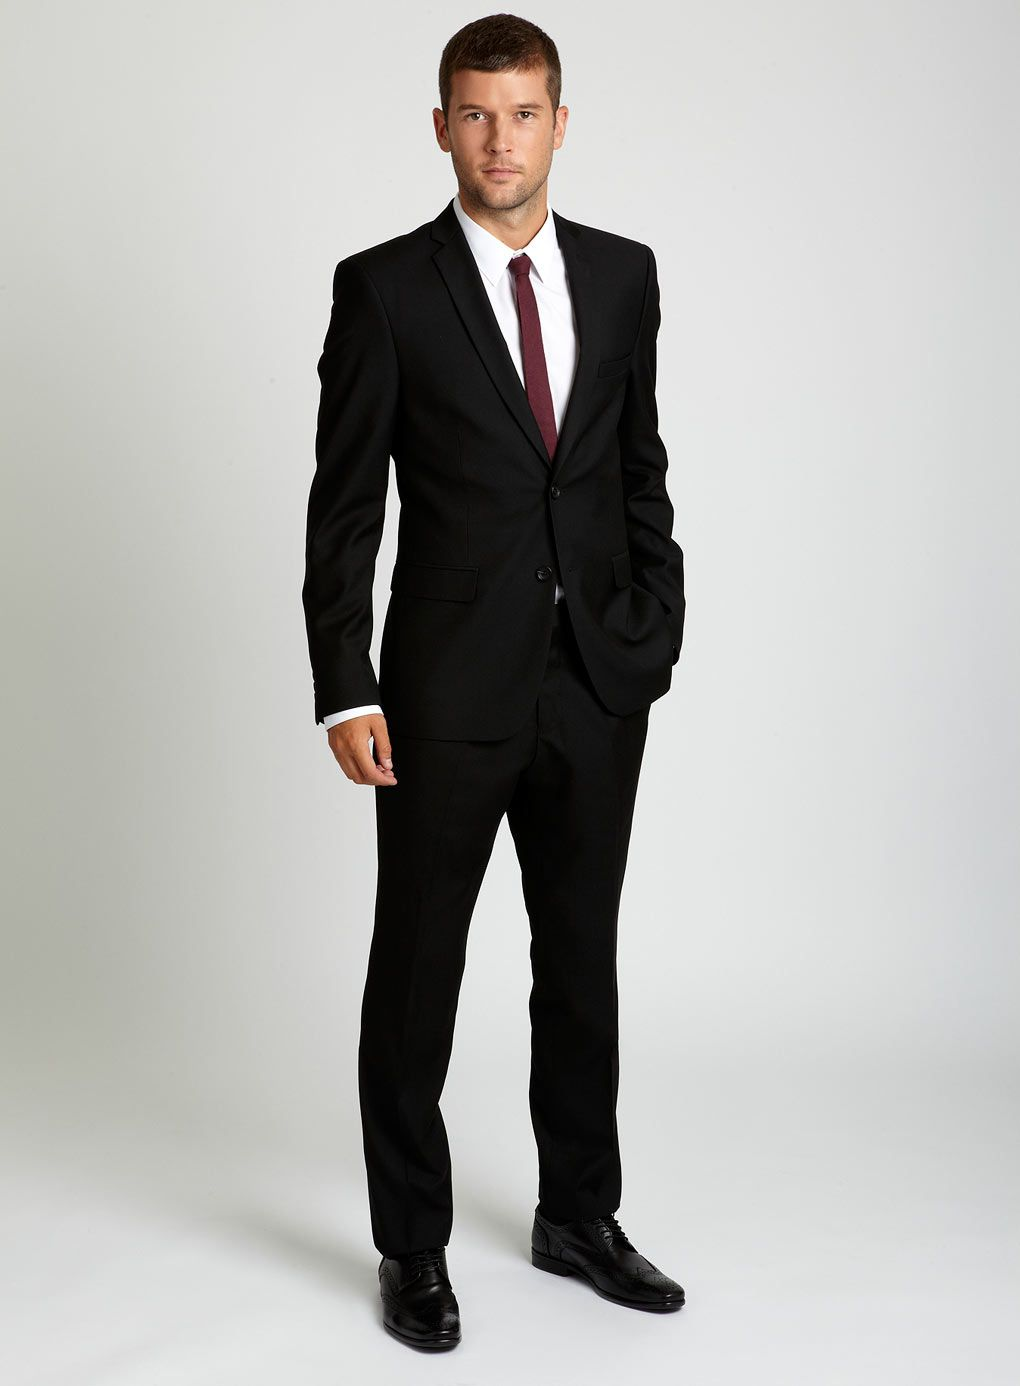 f1cbe5cc3b0e Black Plain Slim Fit Suit... and suit for Eric. Damn... he's gunna look  good in this one day!